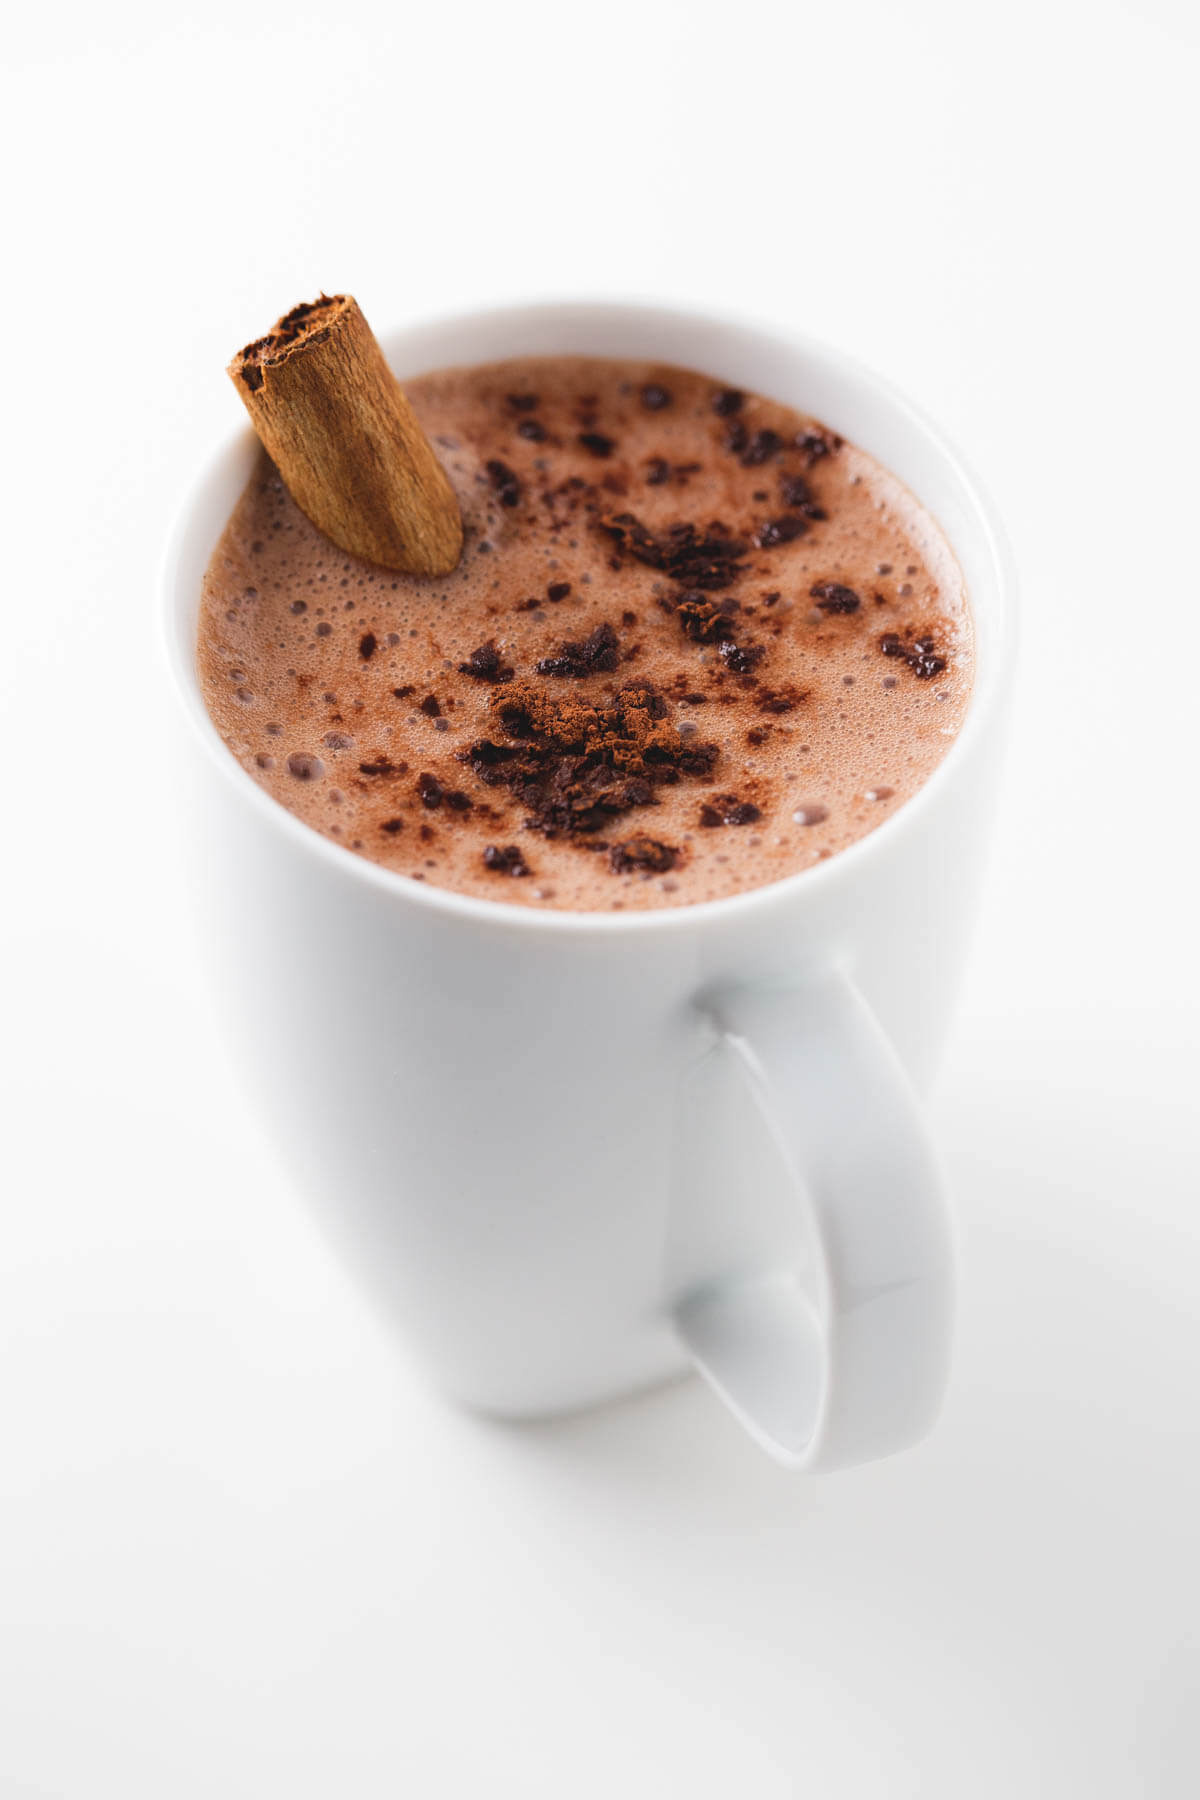 Vegan hot chocolate: With the cold, we crave warm and comforting drinks. This vegan hot chocolate is made with four ingredients; it is delicious and very healthy.